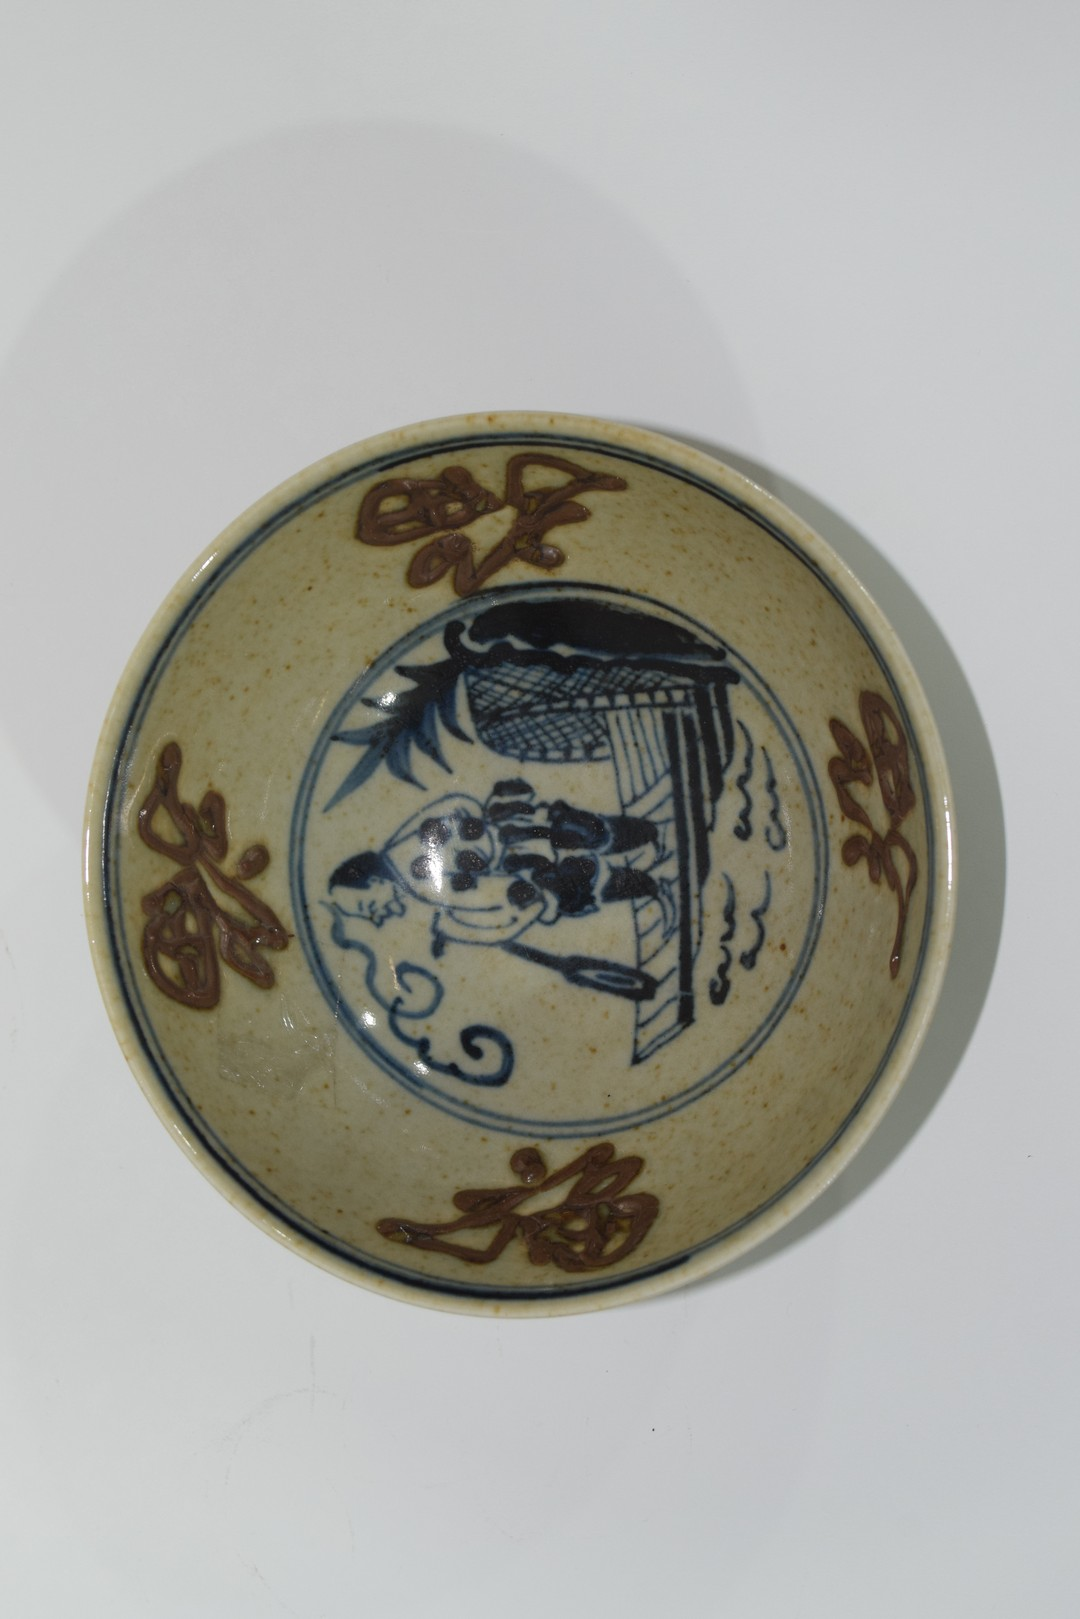 19th century Chinese porcelain bowl - Image 16 of 17